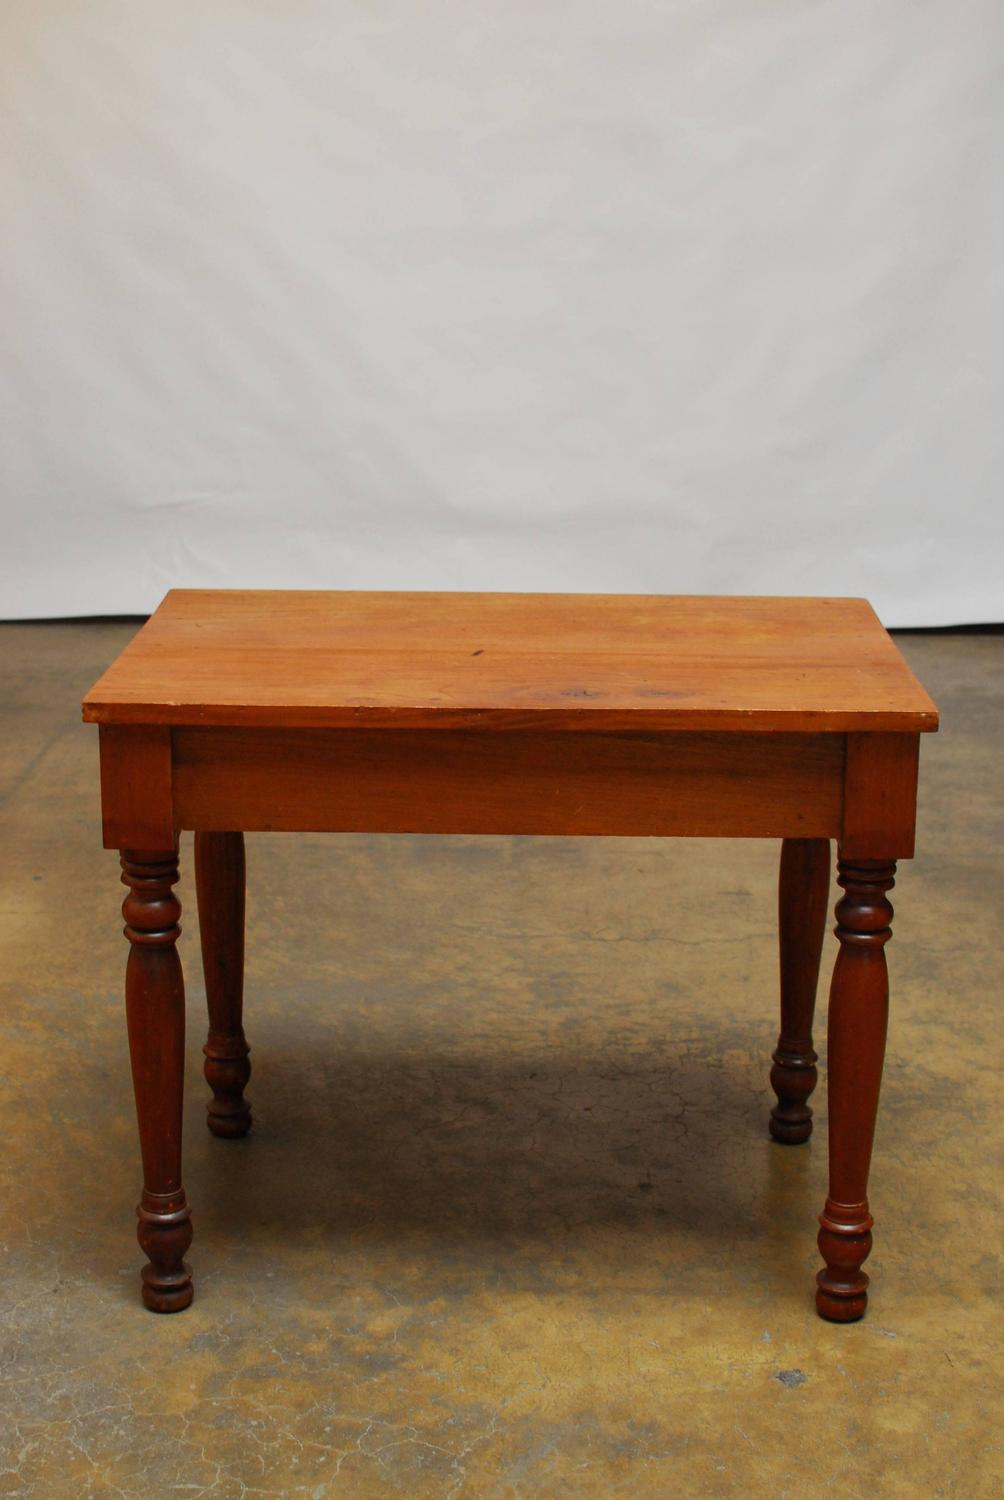 Primitive American Farm Table Desk For Sale at 1stdibs